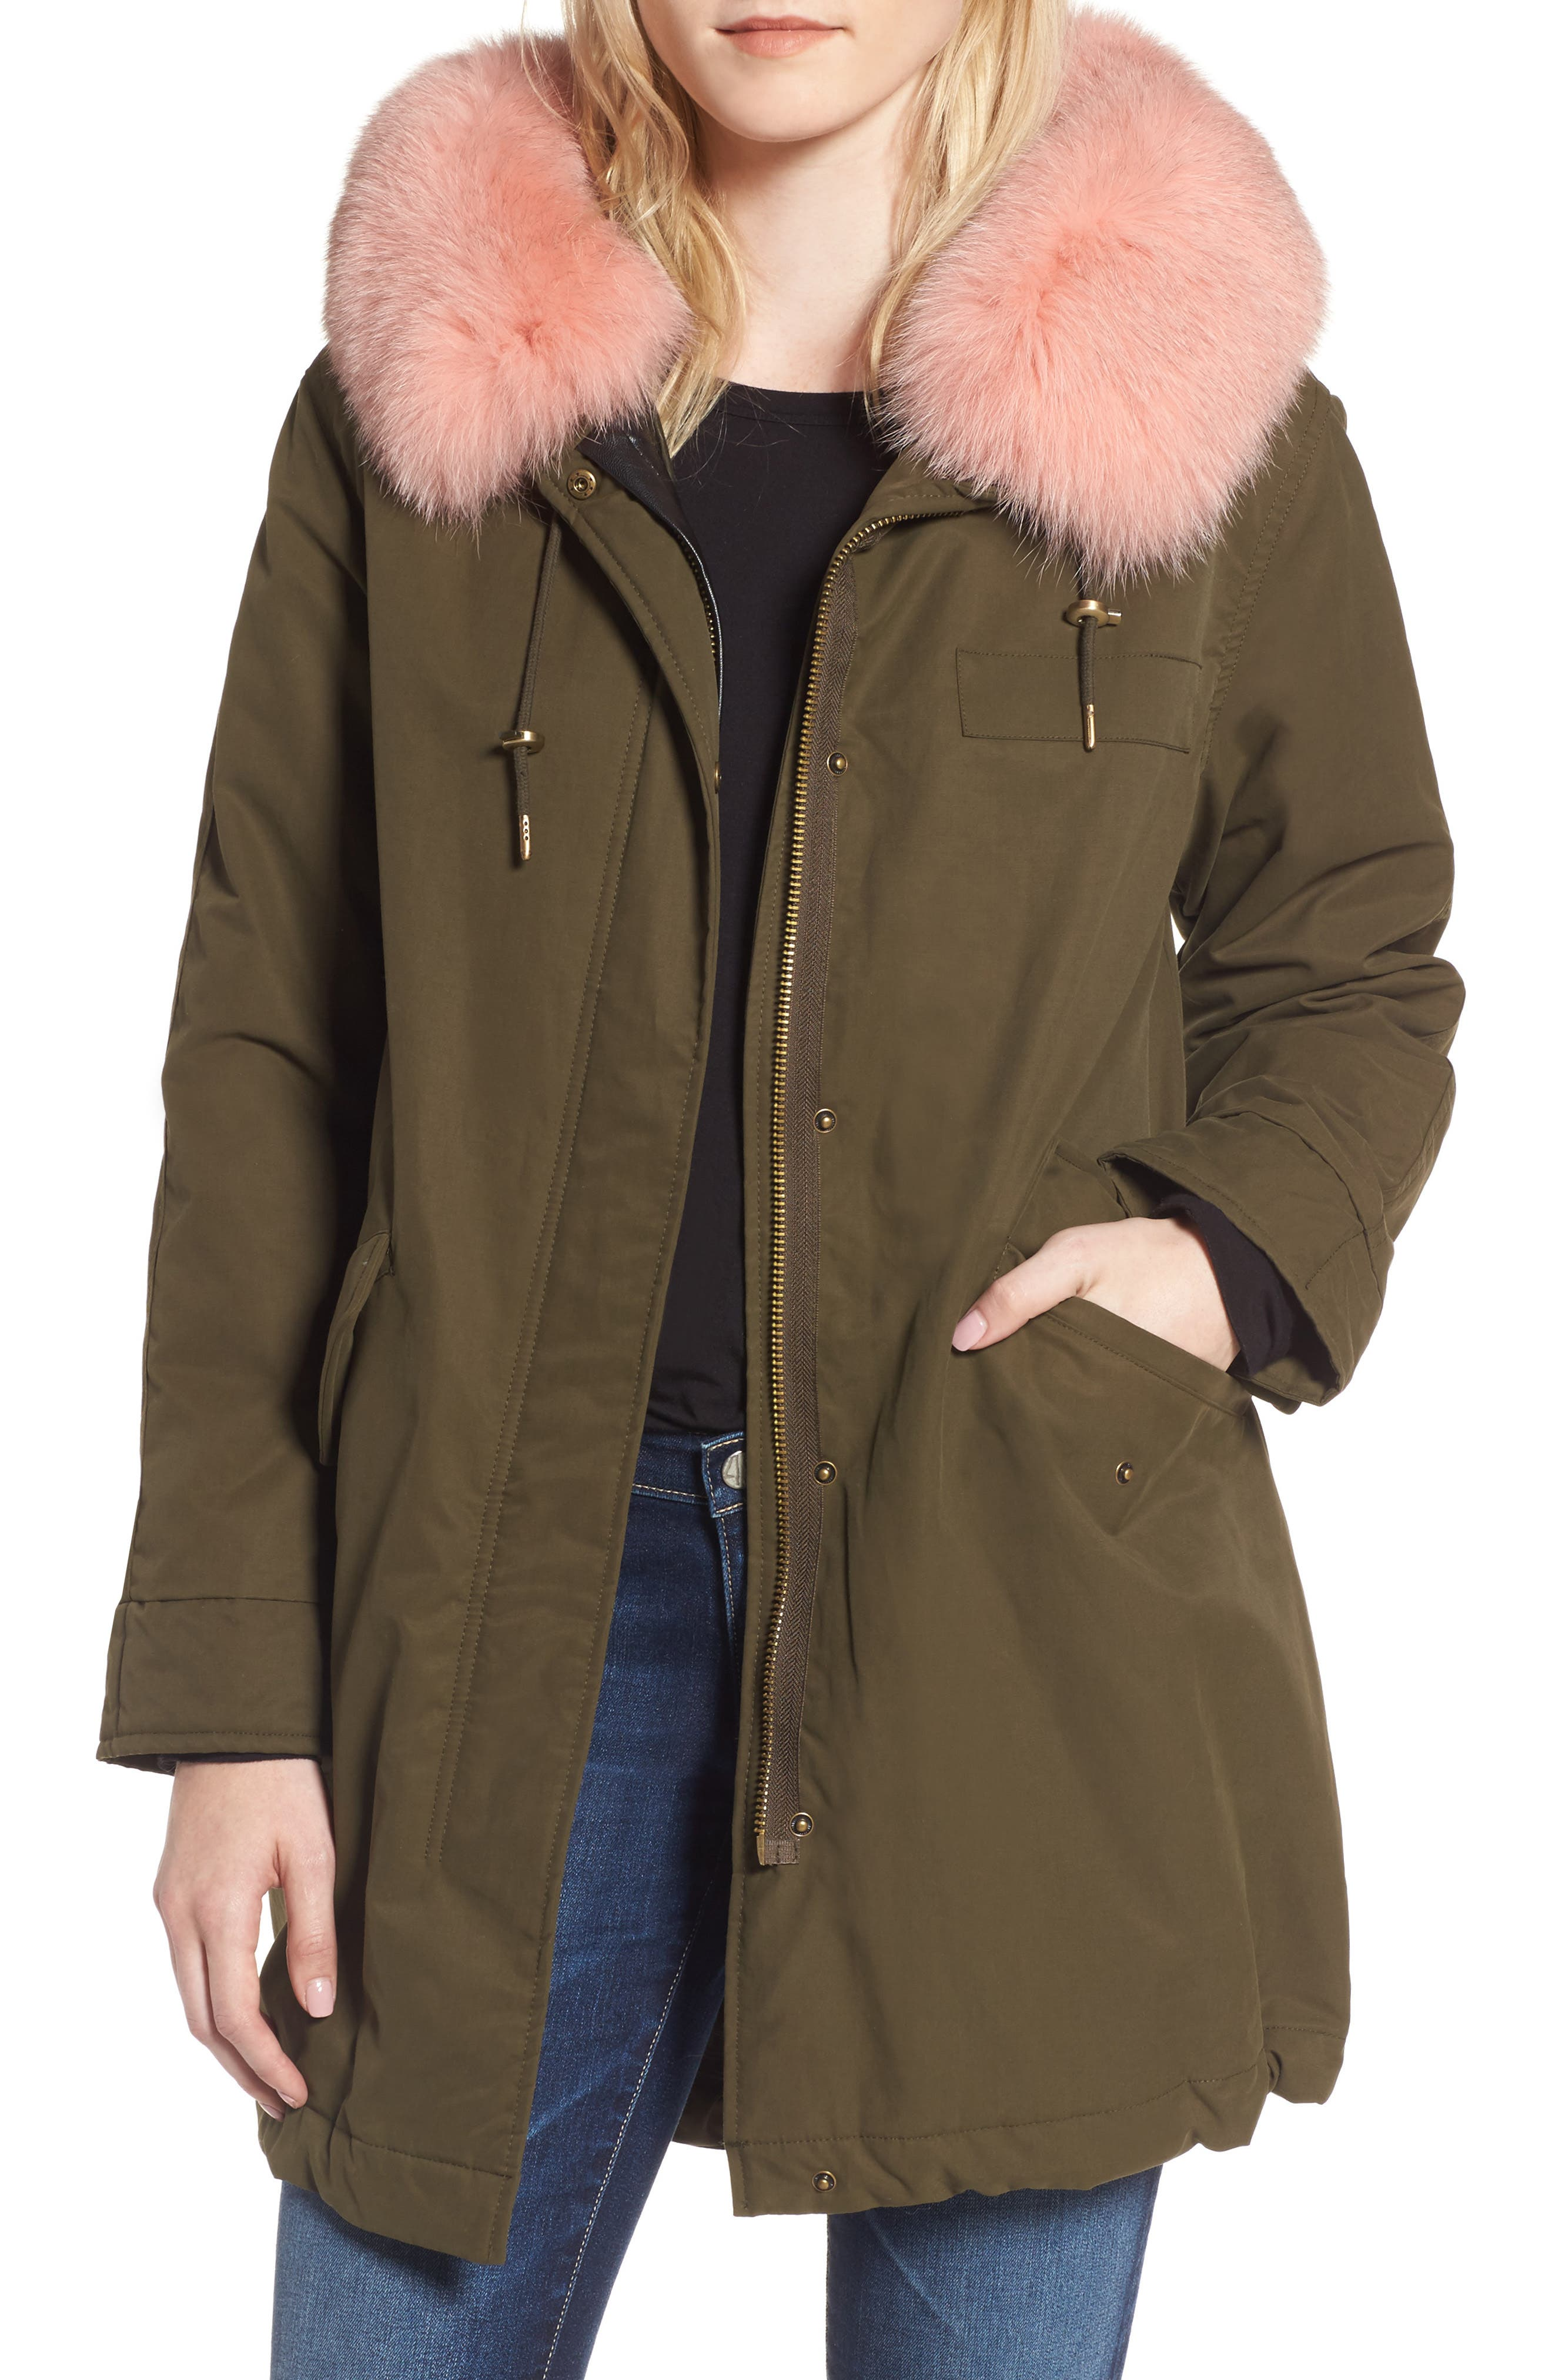 Alternate Image 1 Selected - 1 Madison Hooded Cotton Parka with Genuine Fox Fur Trim